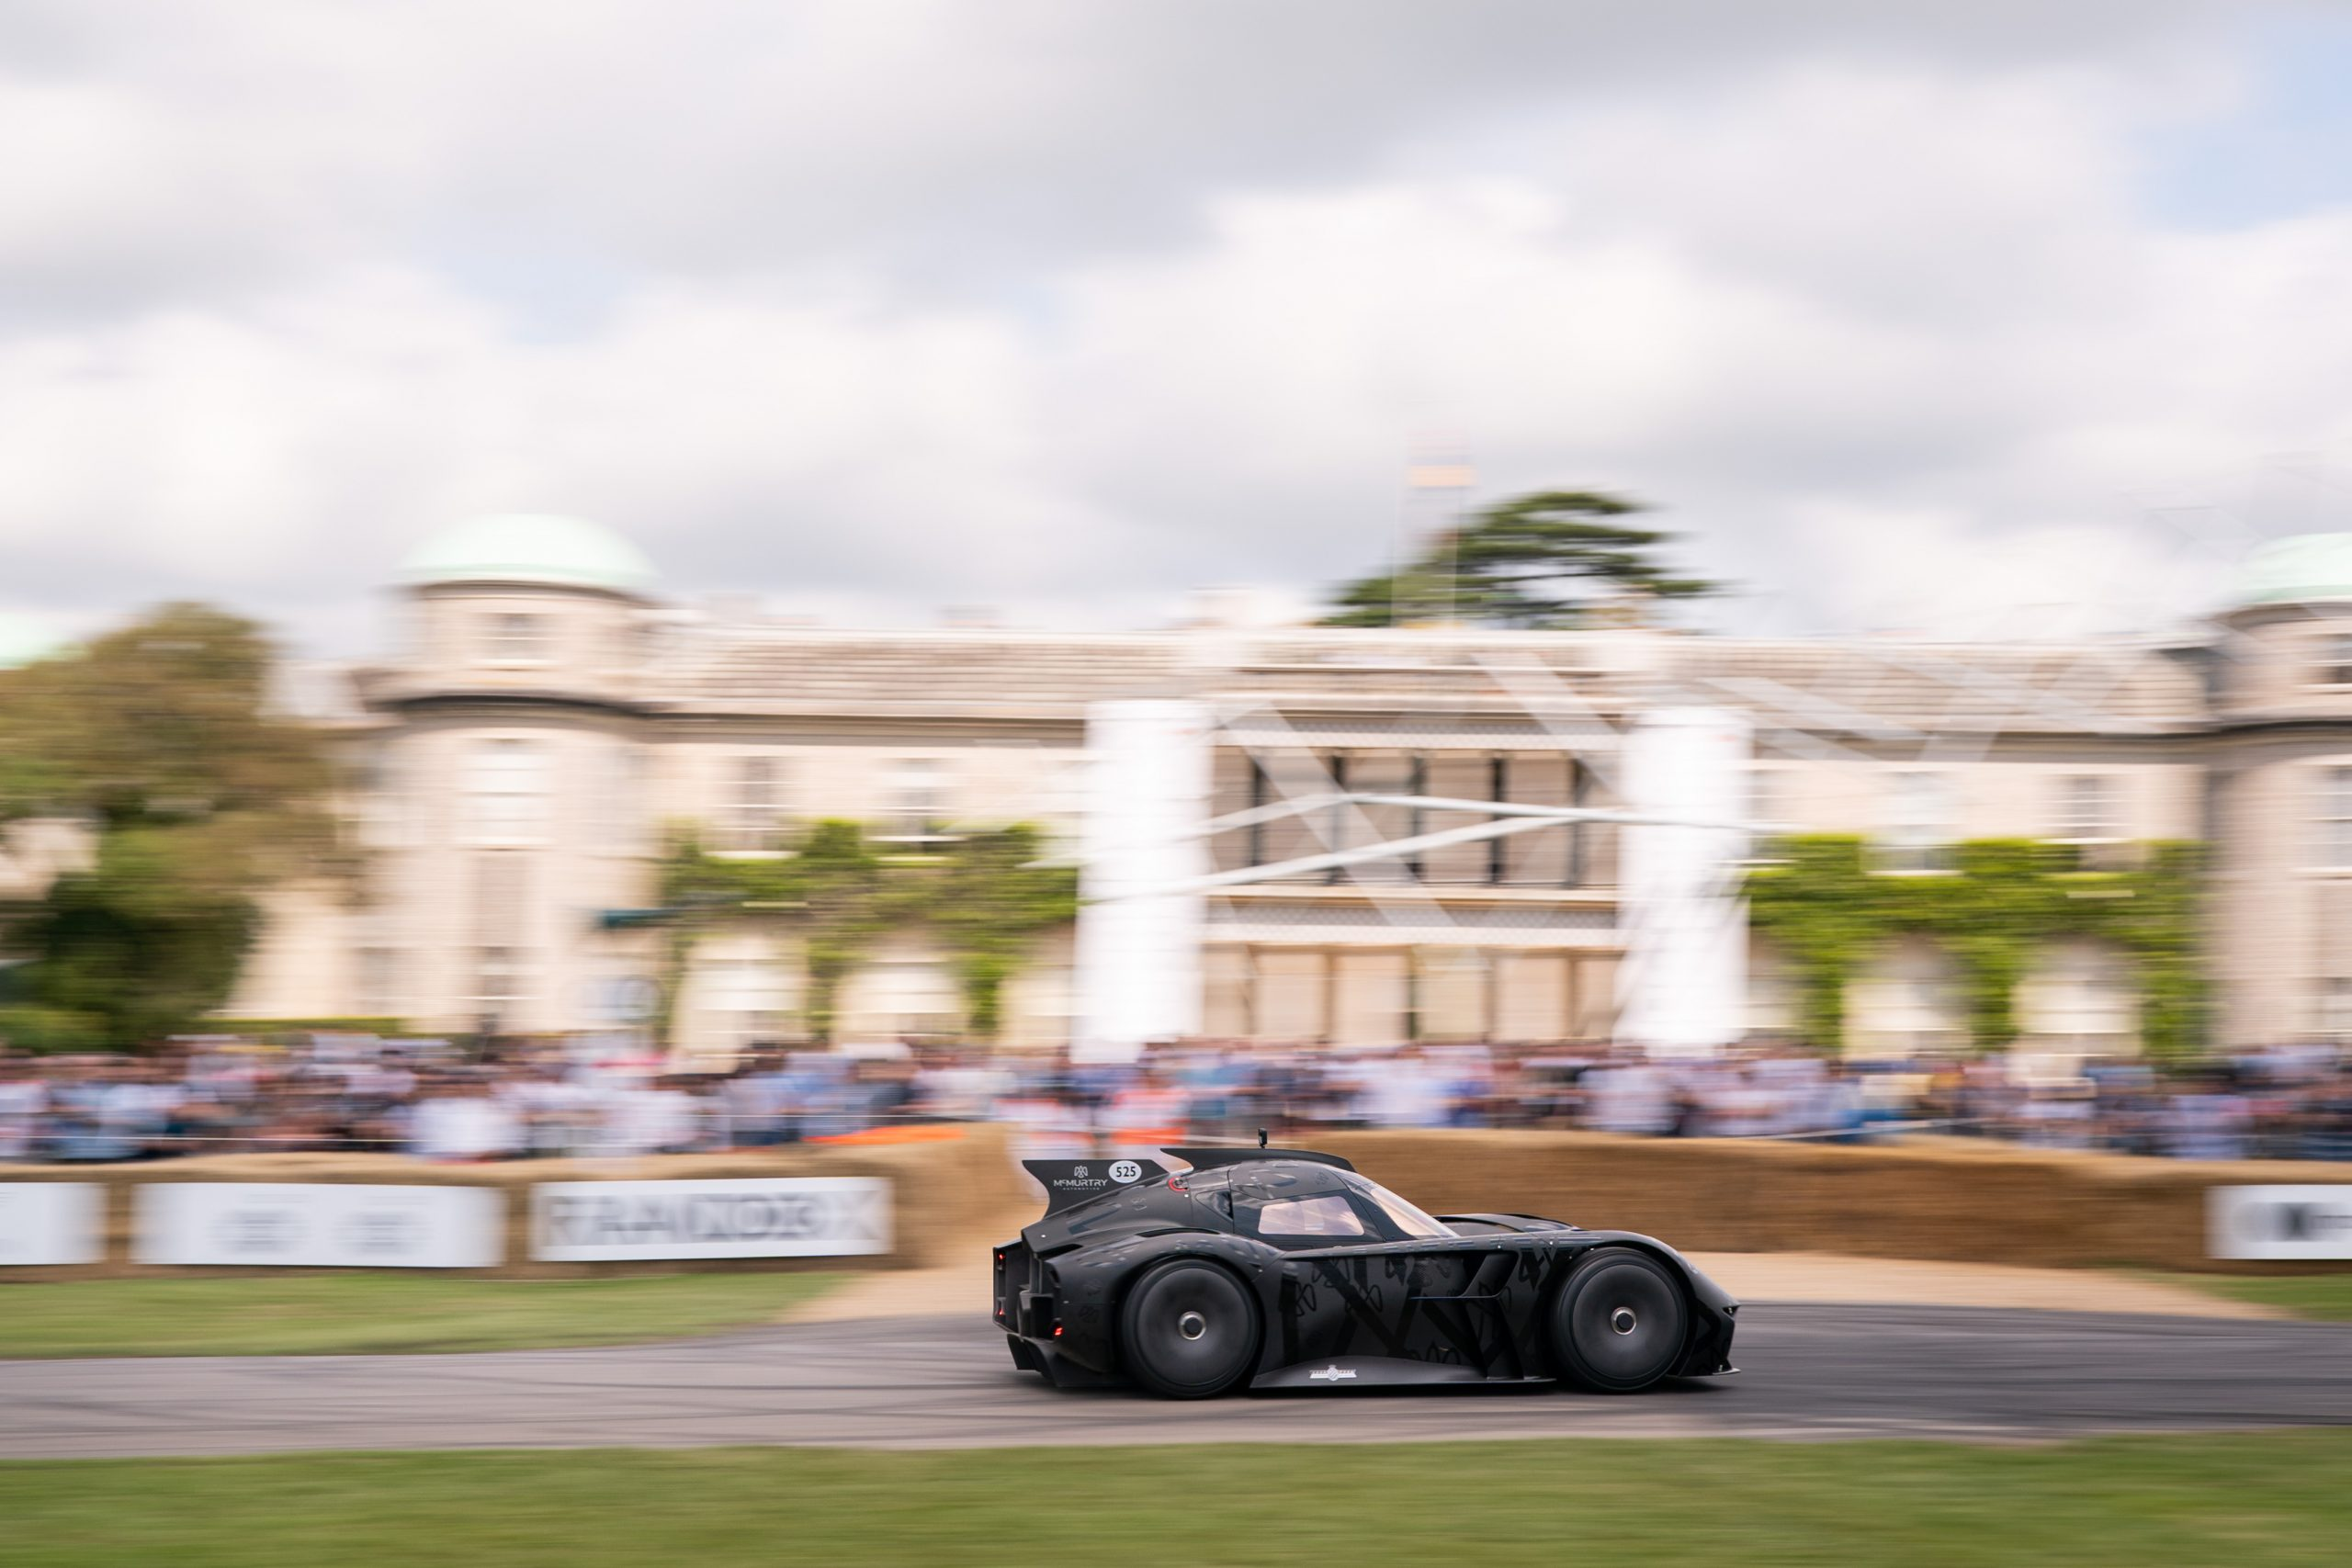 The McMurtry Spéirling flies past Goodwood House on its way up the Hillclimb at the Festival of Speed